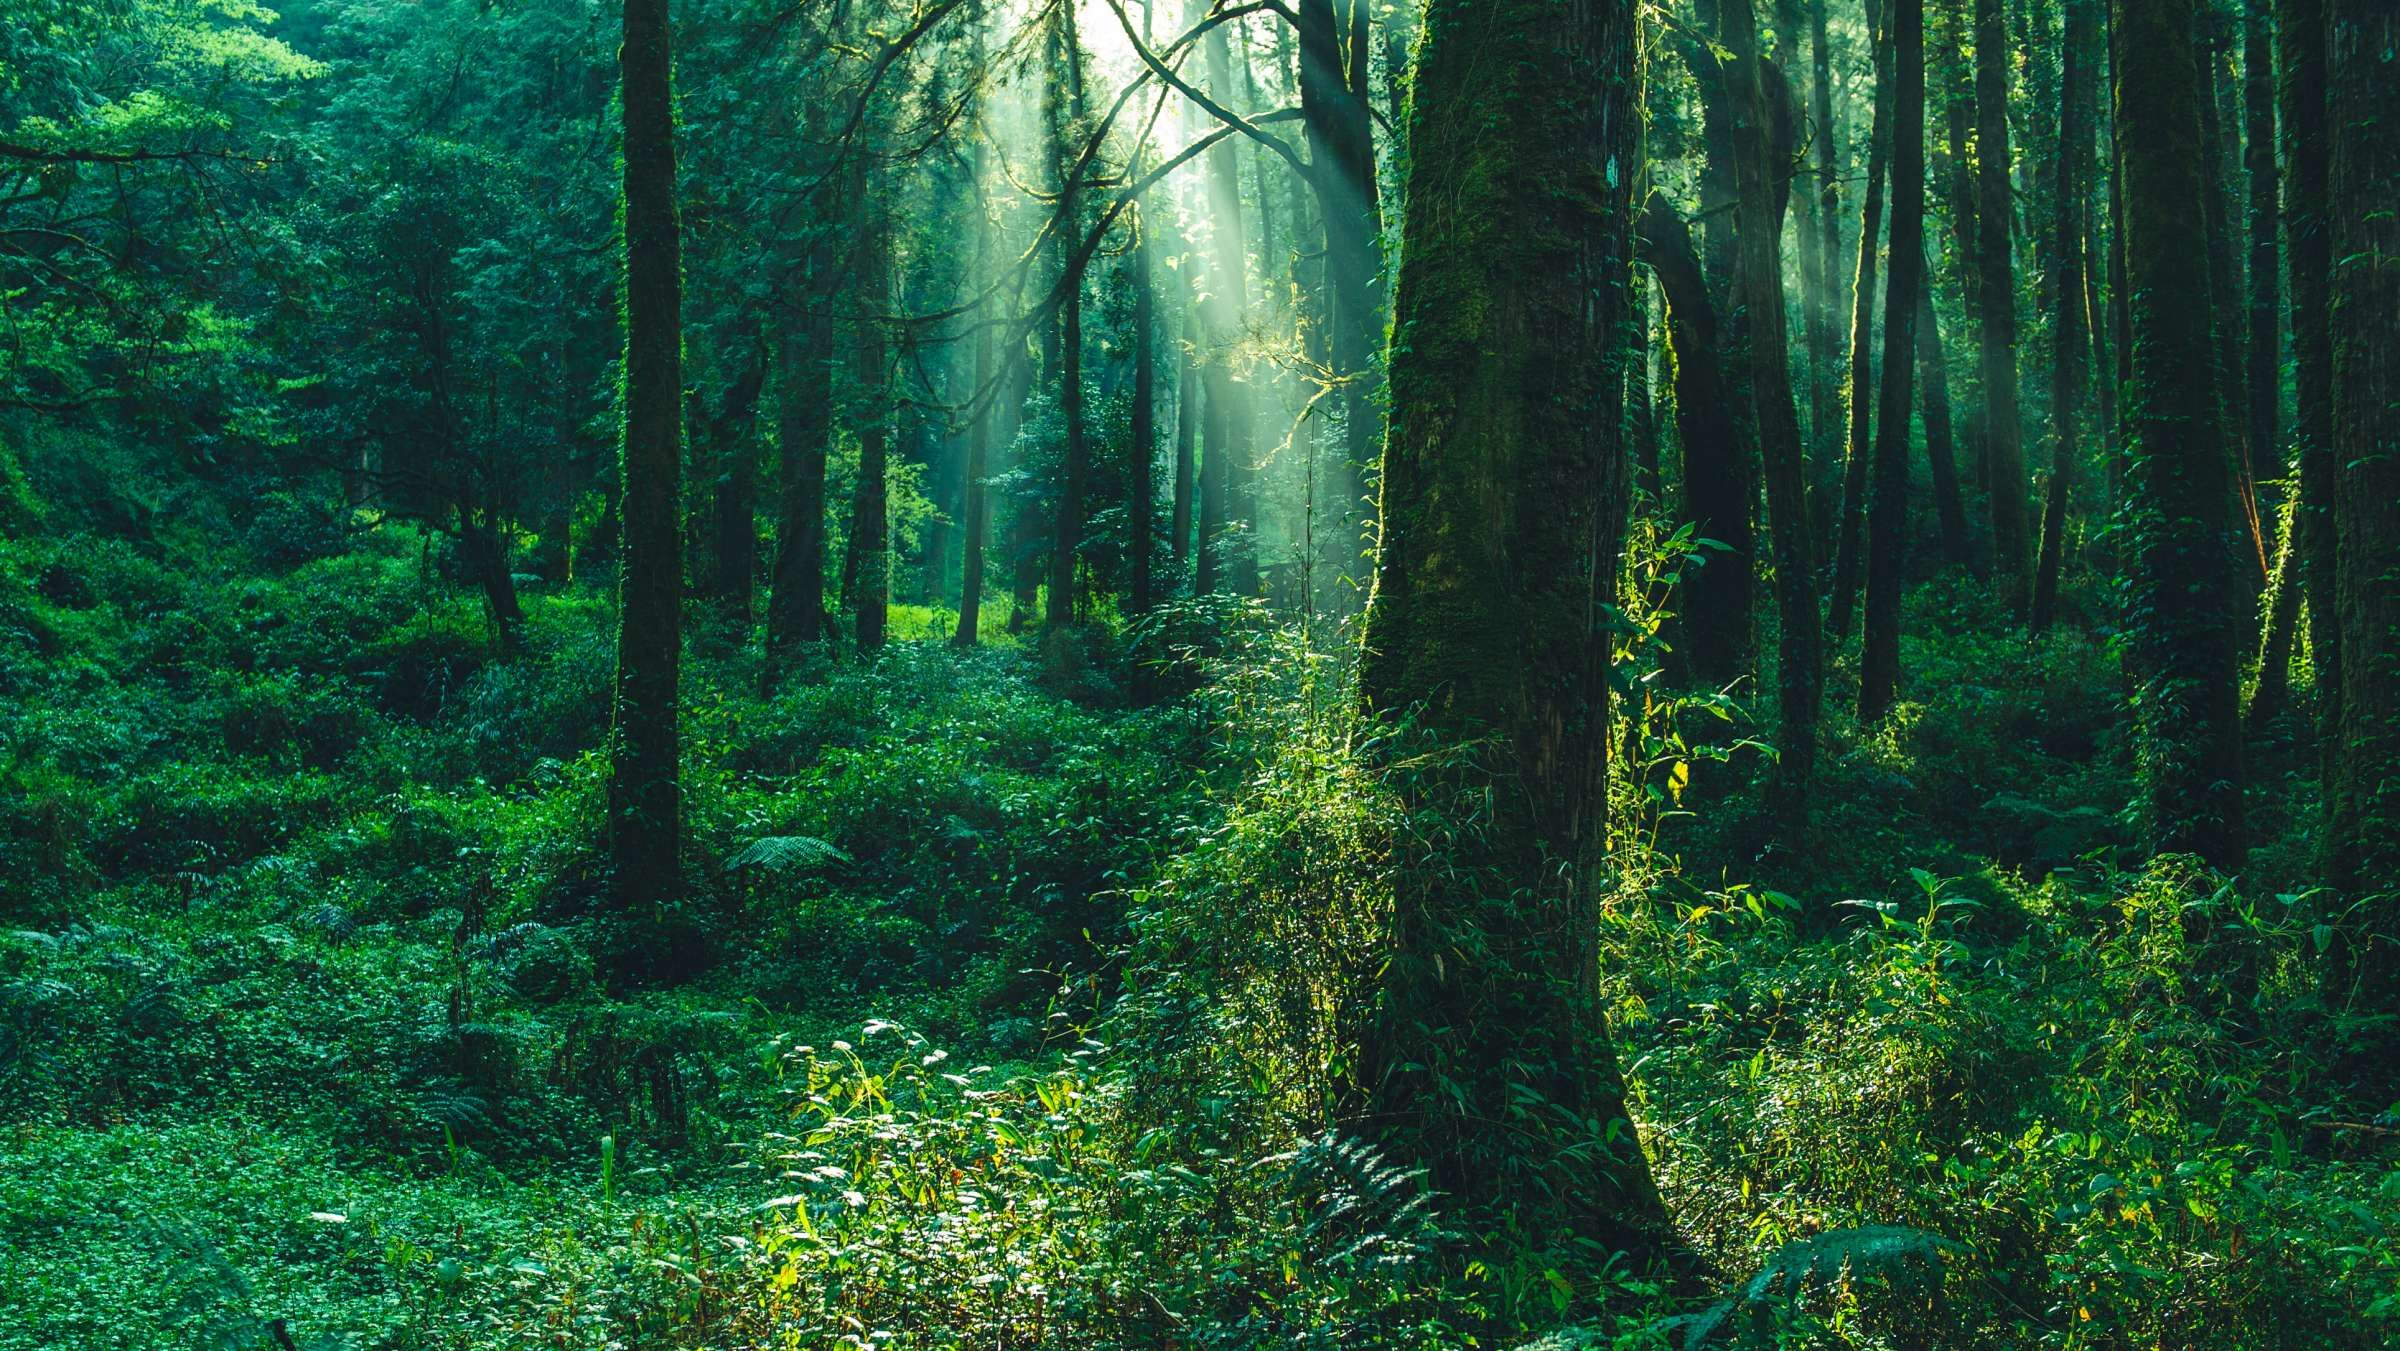 What's the Difference Between Forests, Woods, and Jungles?